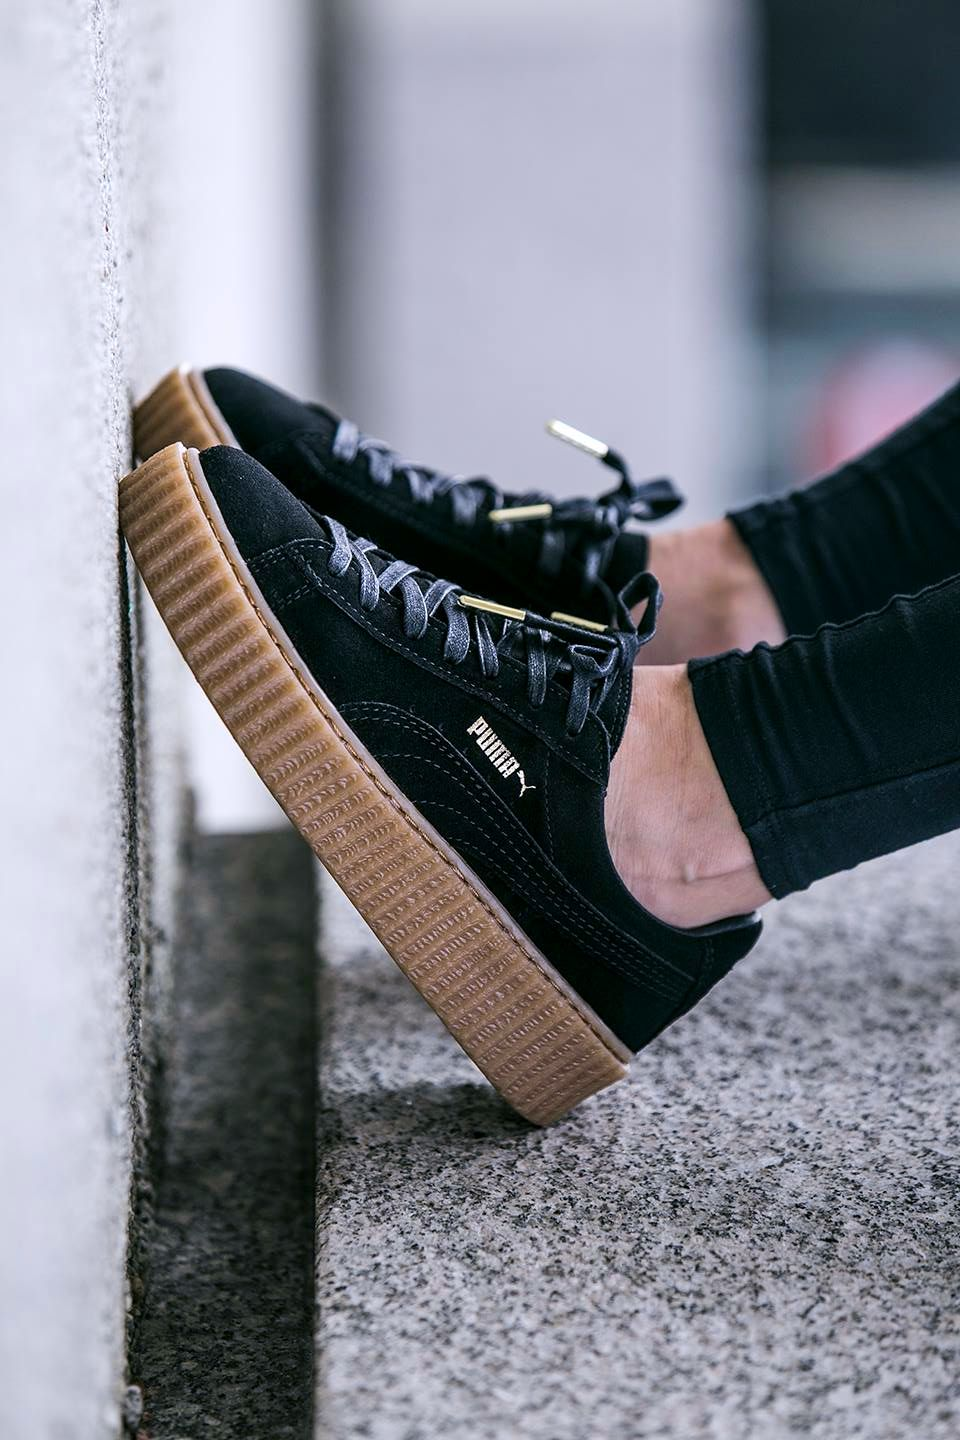 766d5fd6b6f Puma by Rihanna Suede Creeper (via Kicks-daily.com)